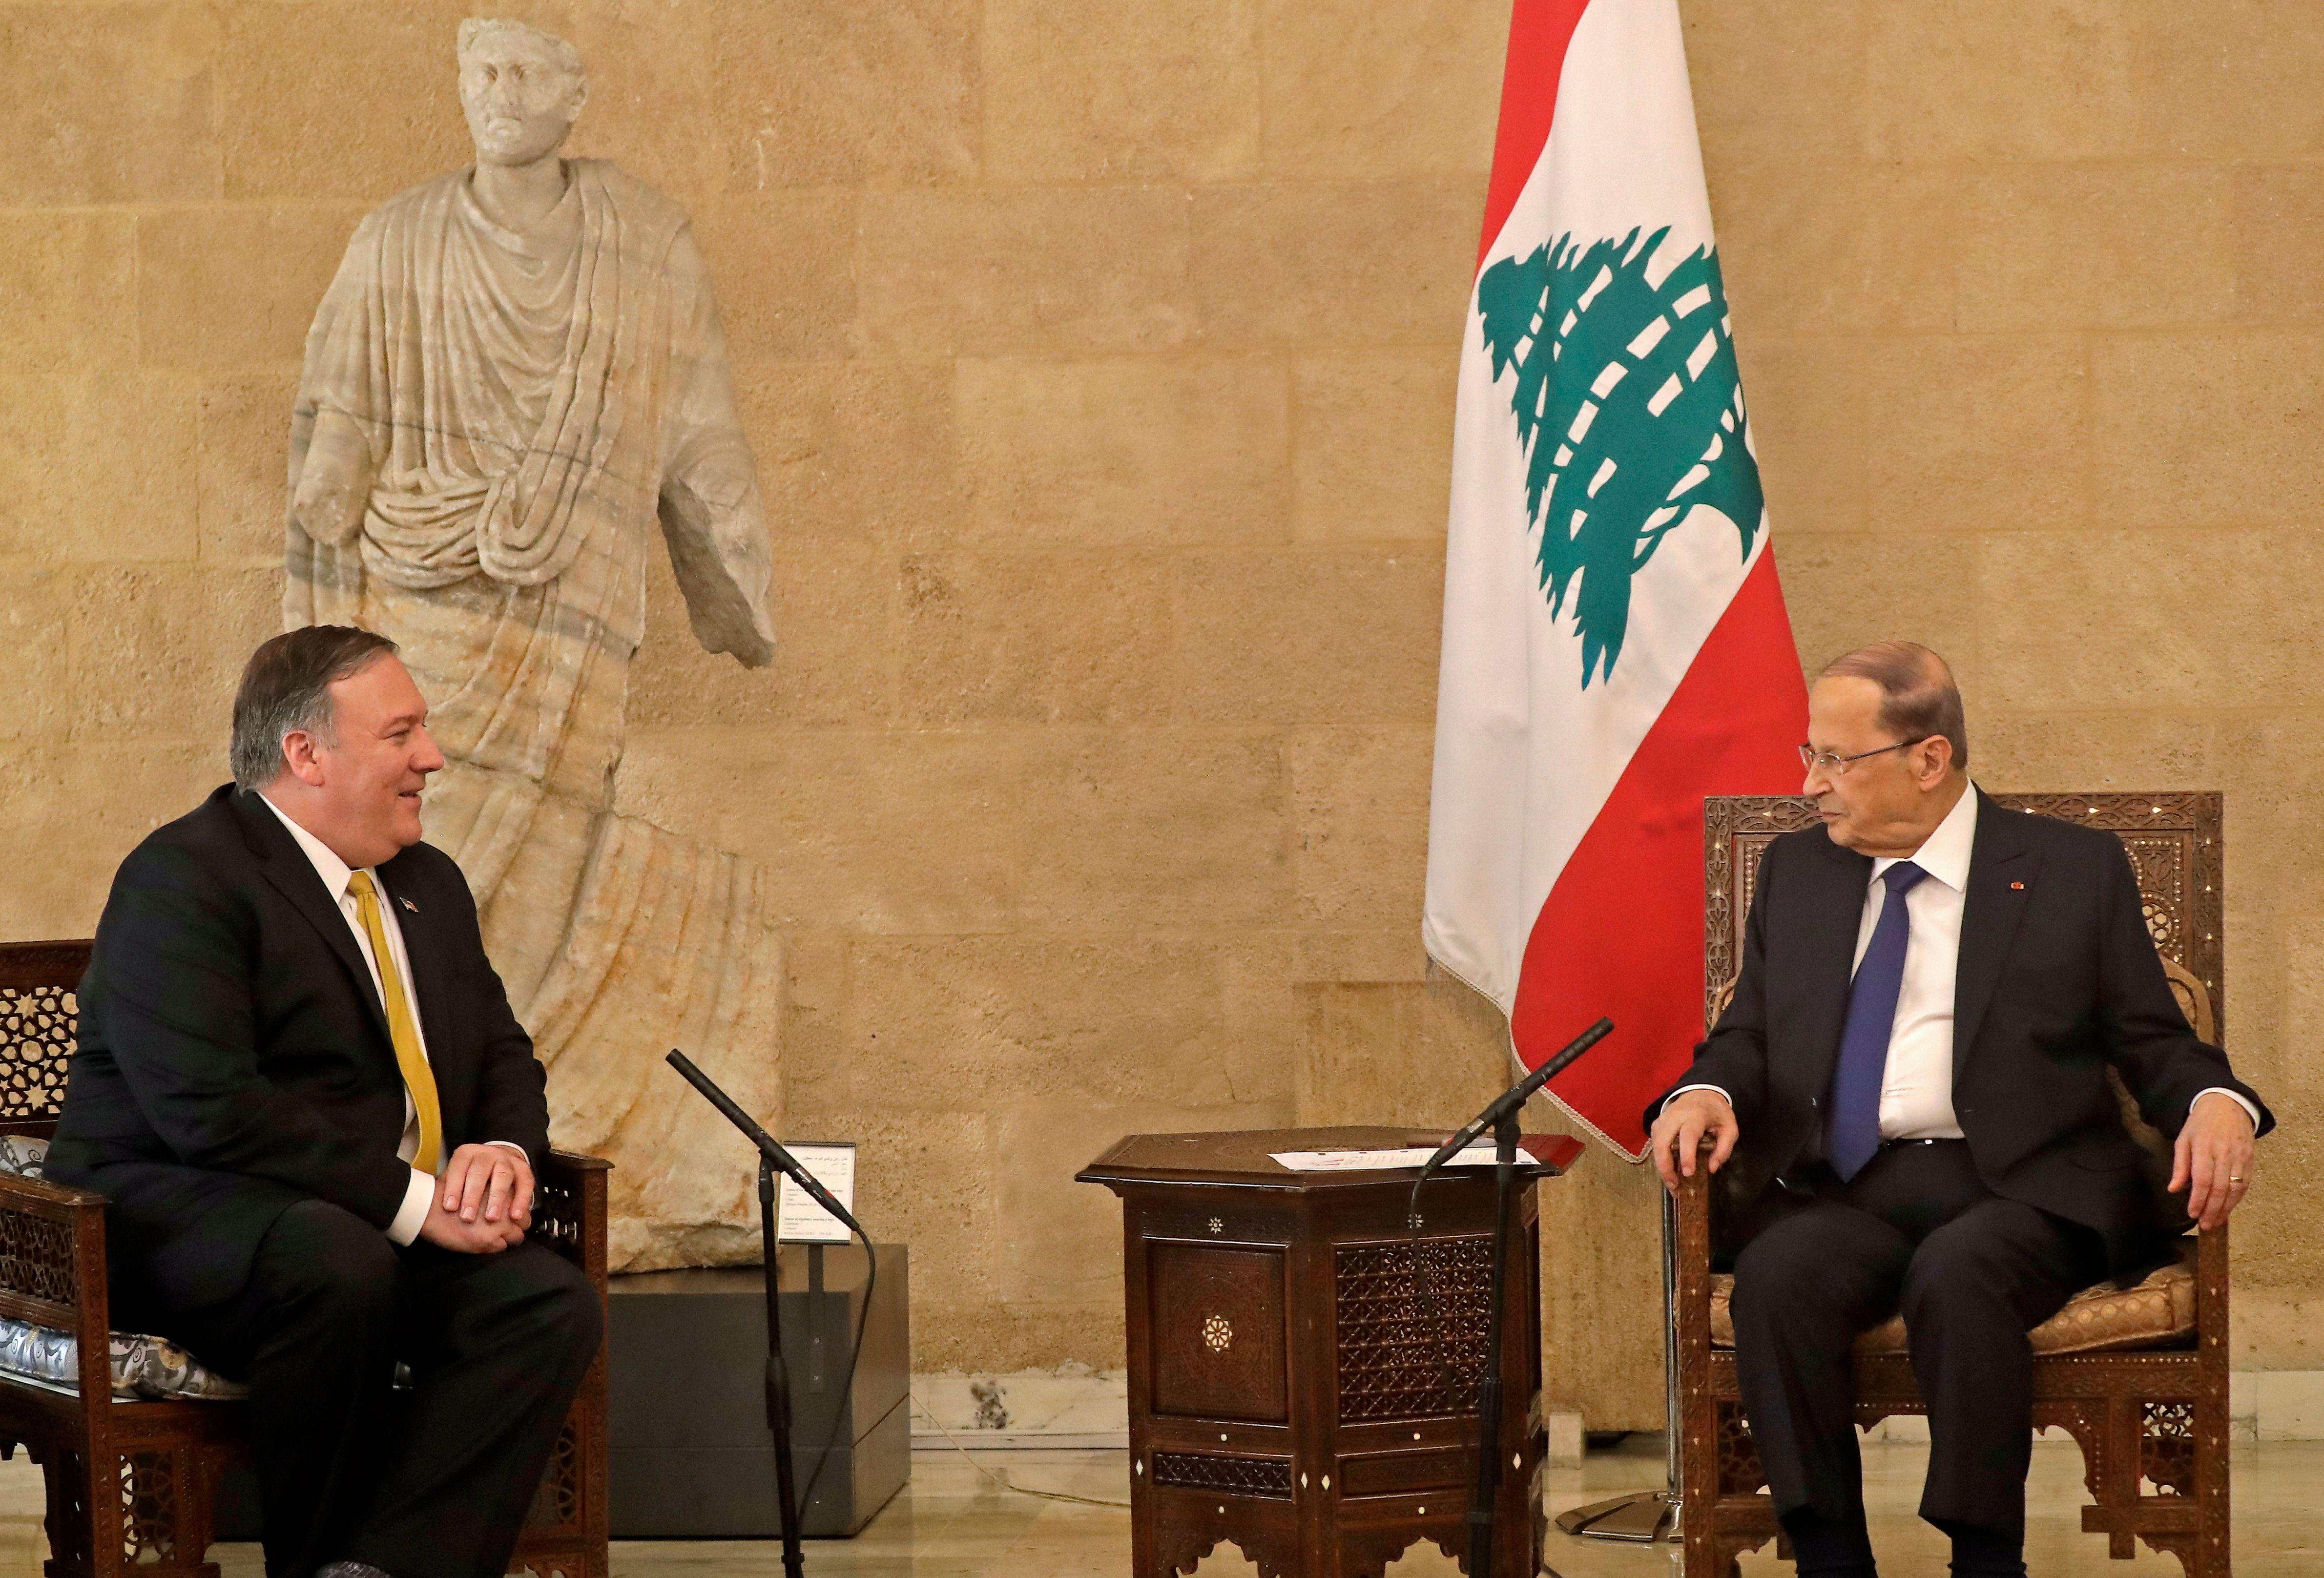 US Secretary of State Mike Pompeo (L) meets with Lebanon's President Michel Aoun (R) at the presidential palace in Baabda, east of the capital Beirut on March 22, 2019. (JOSEPH EID/AFP/Getty Images)